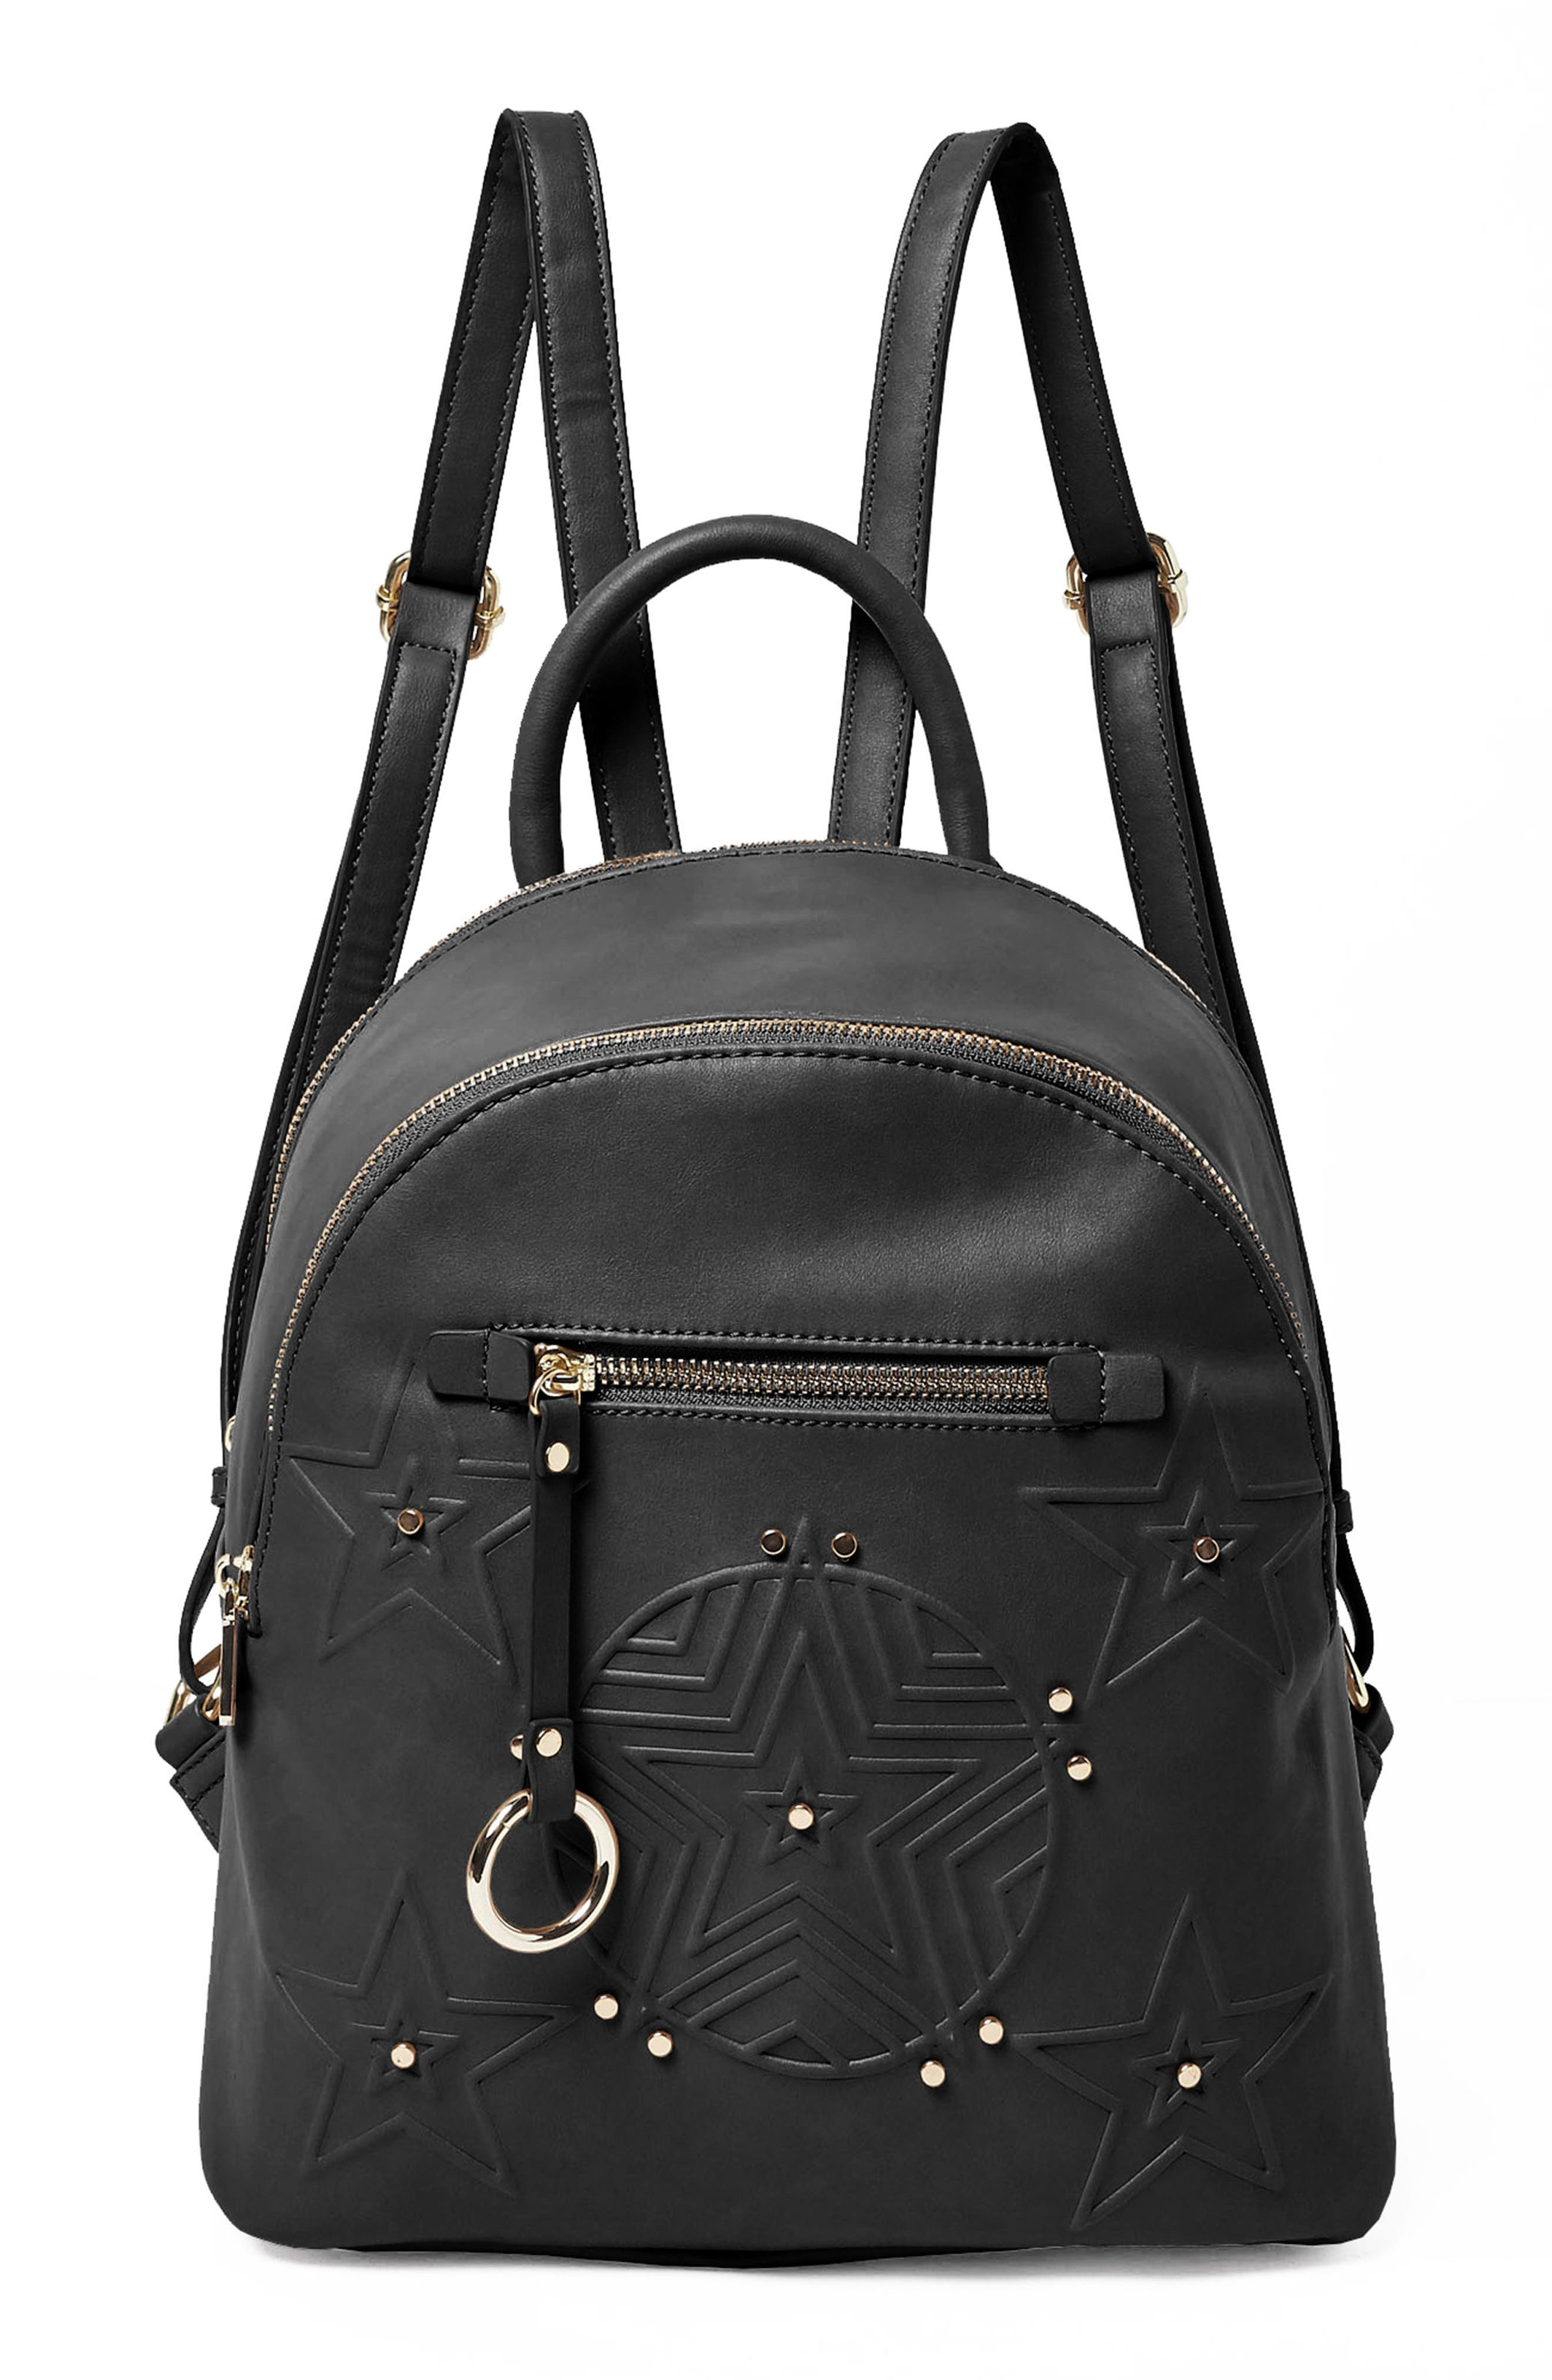 Celestial Vegan Leather Backpack,                             Main thumbnail 1, color,                             001